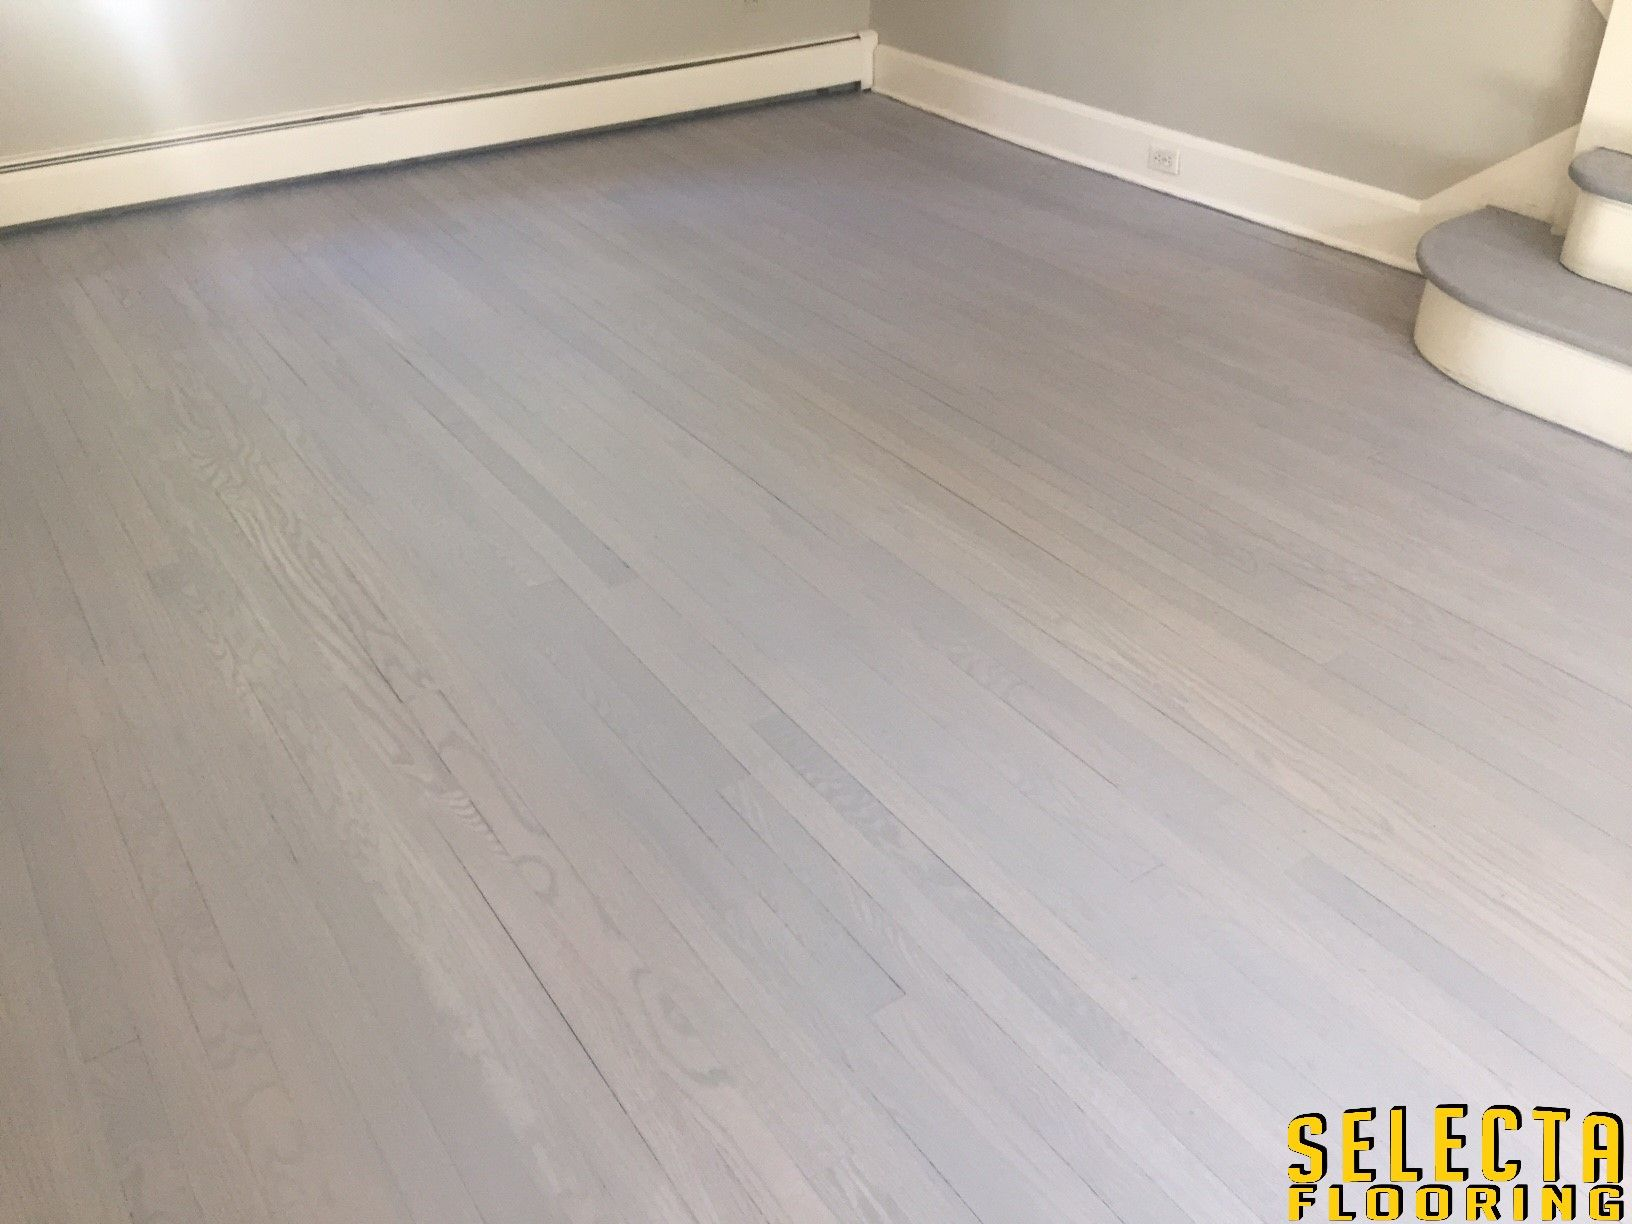 Rubio Monocoat Ash Grey With Aqua Pre Color Staining Hardwood Floors